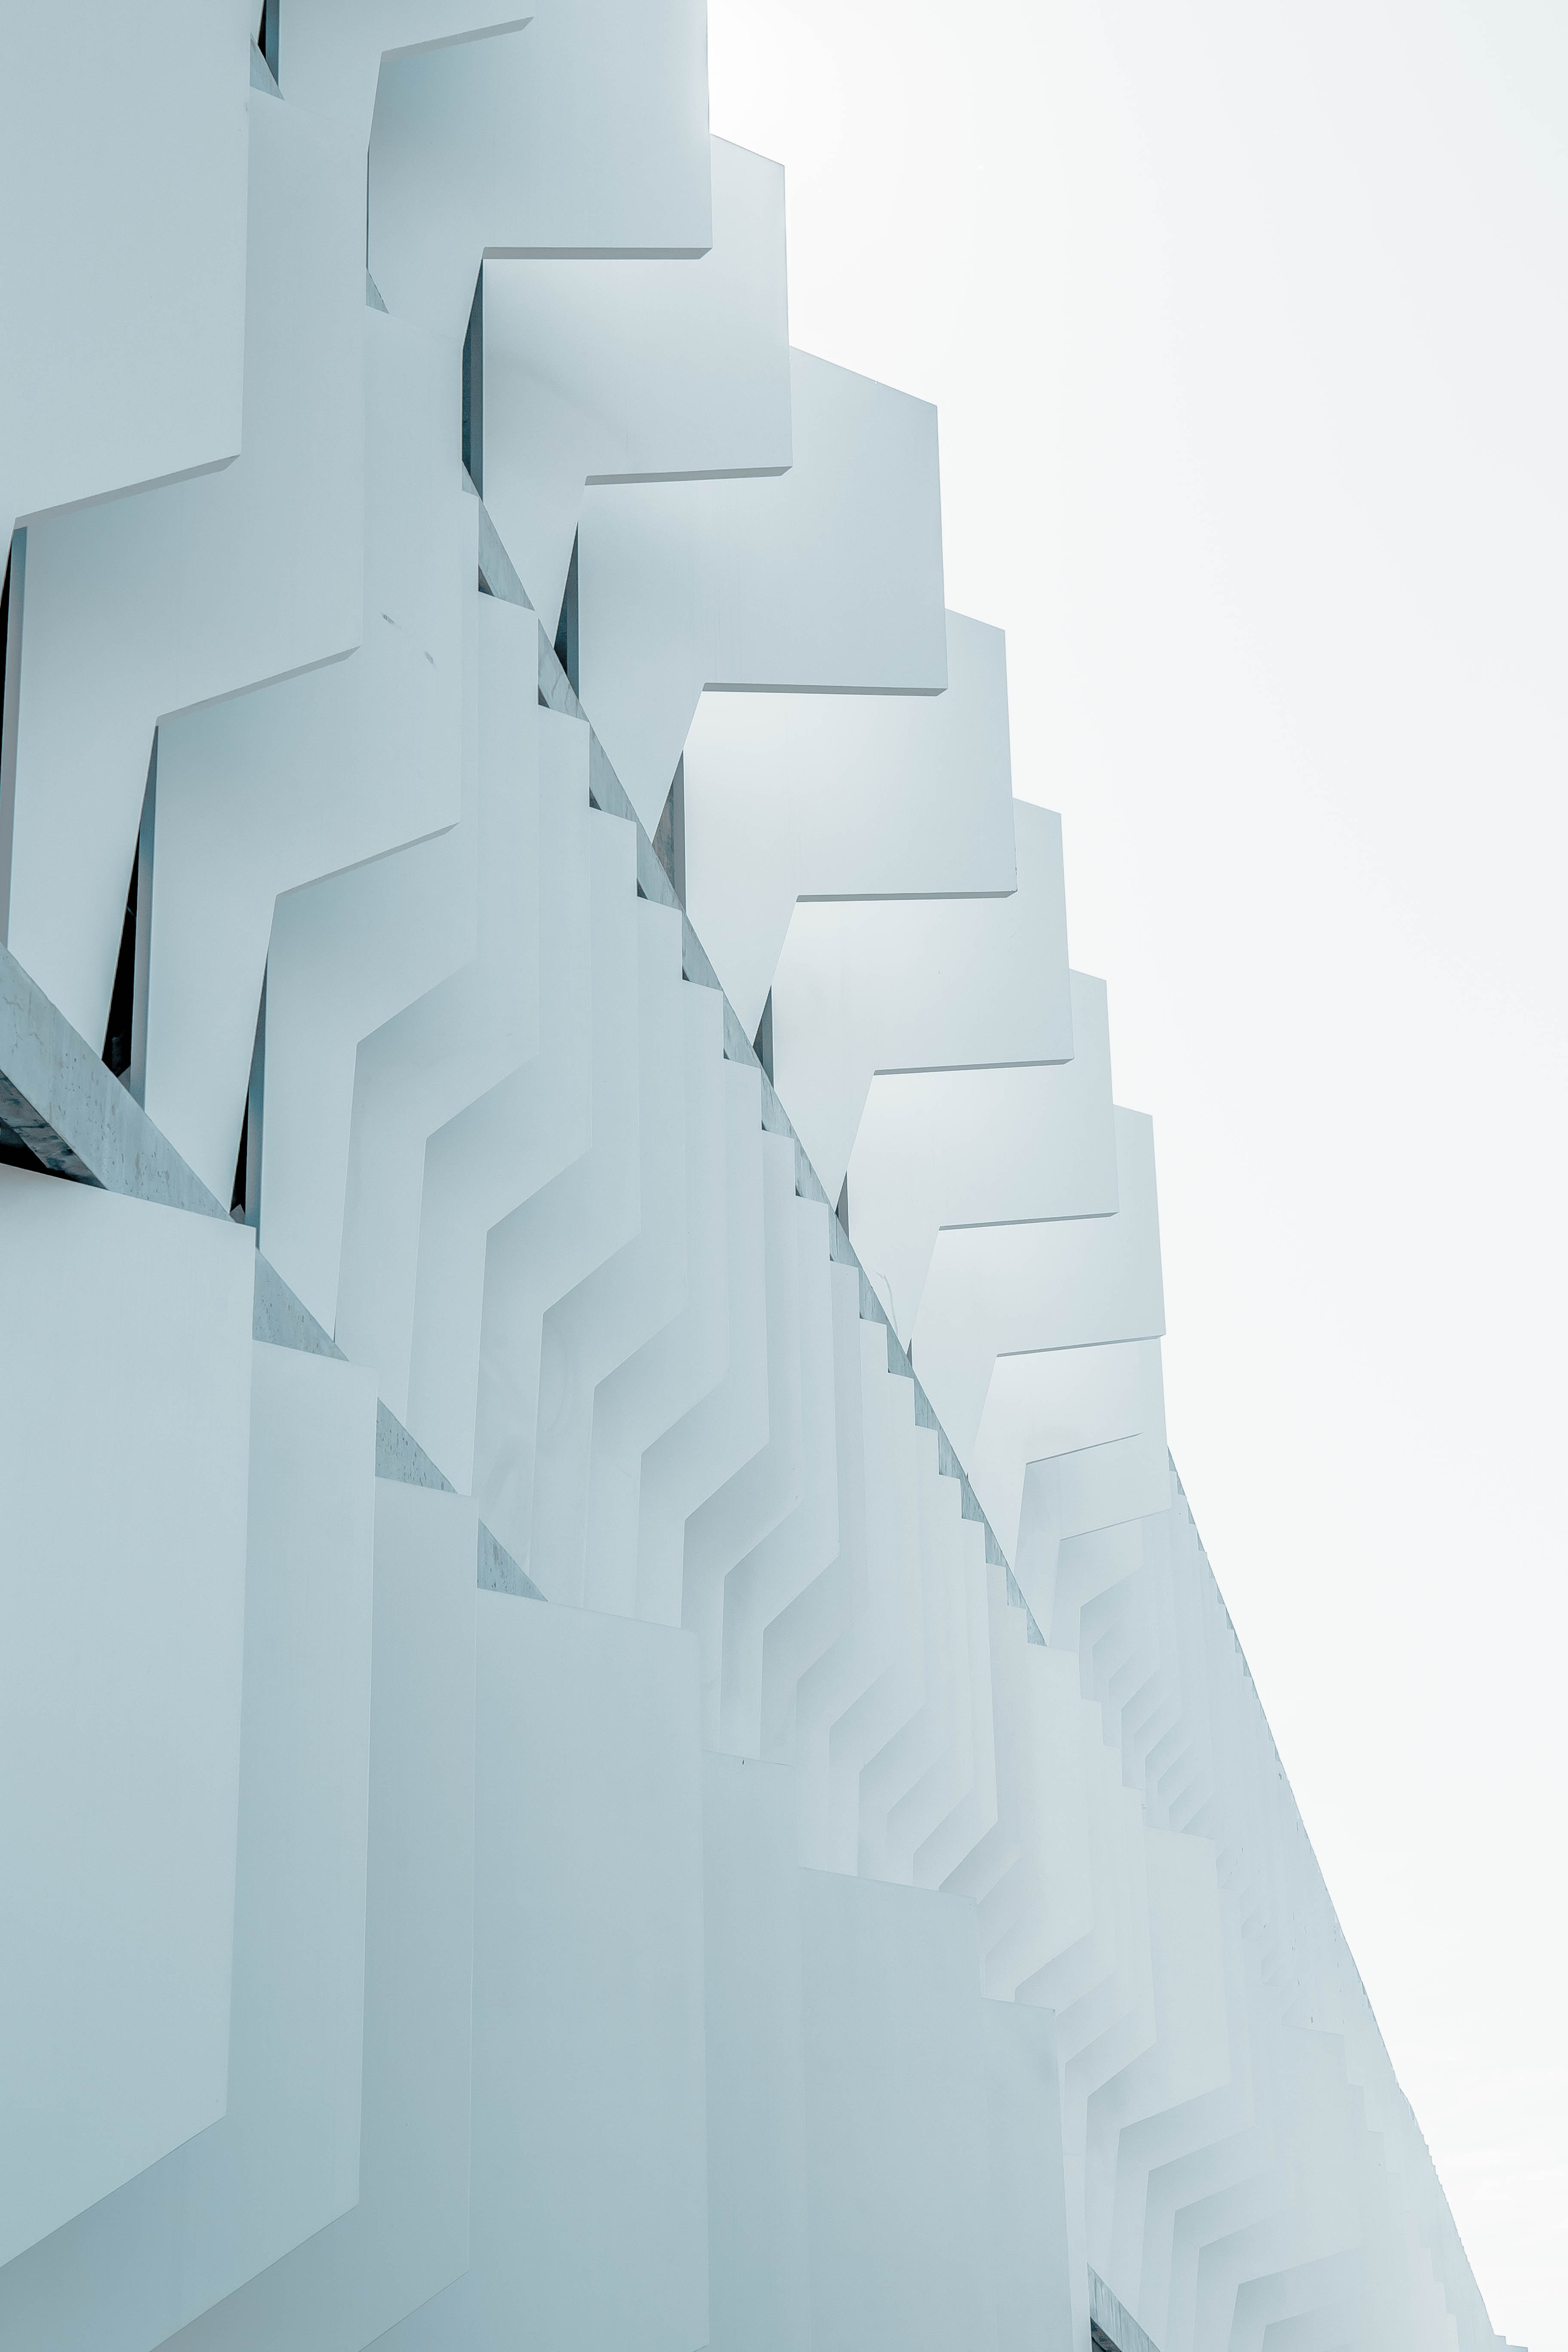 A side view of a white facade in Madrid